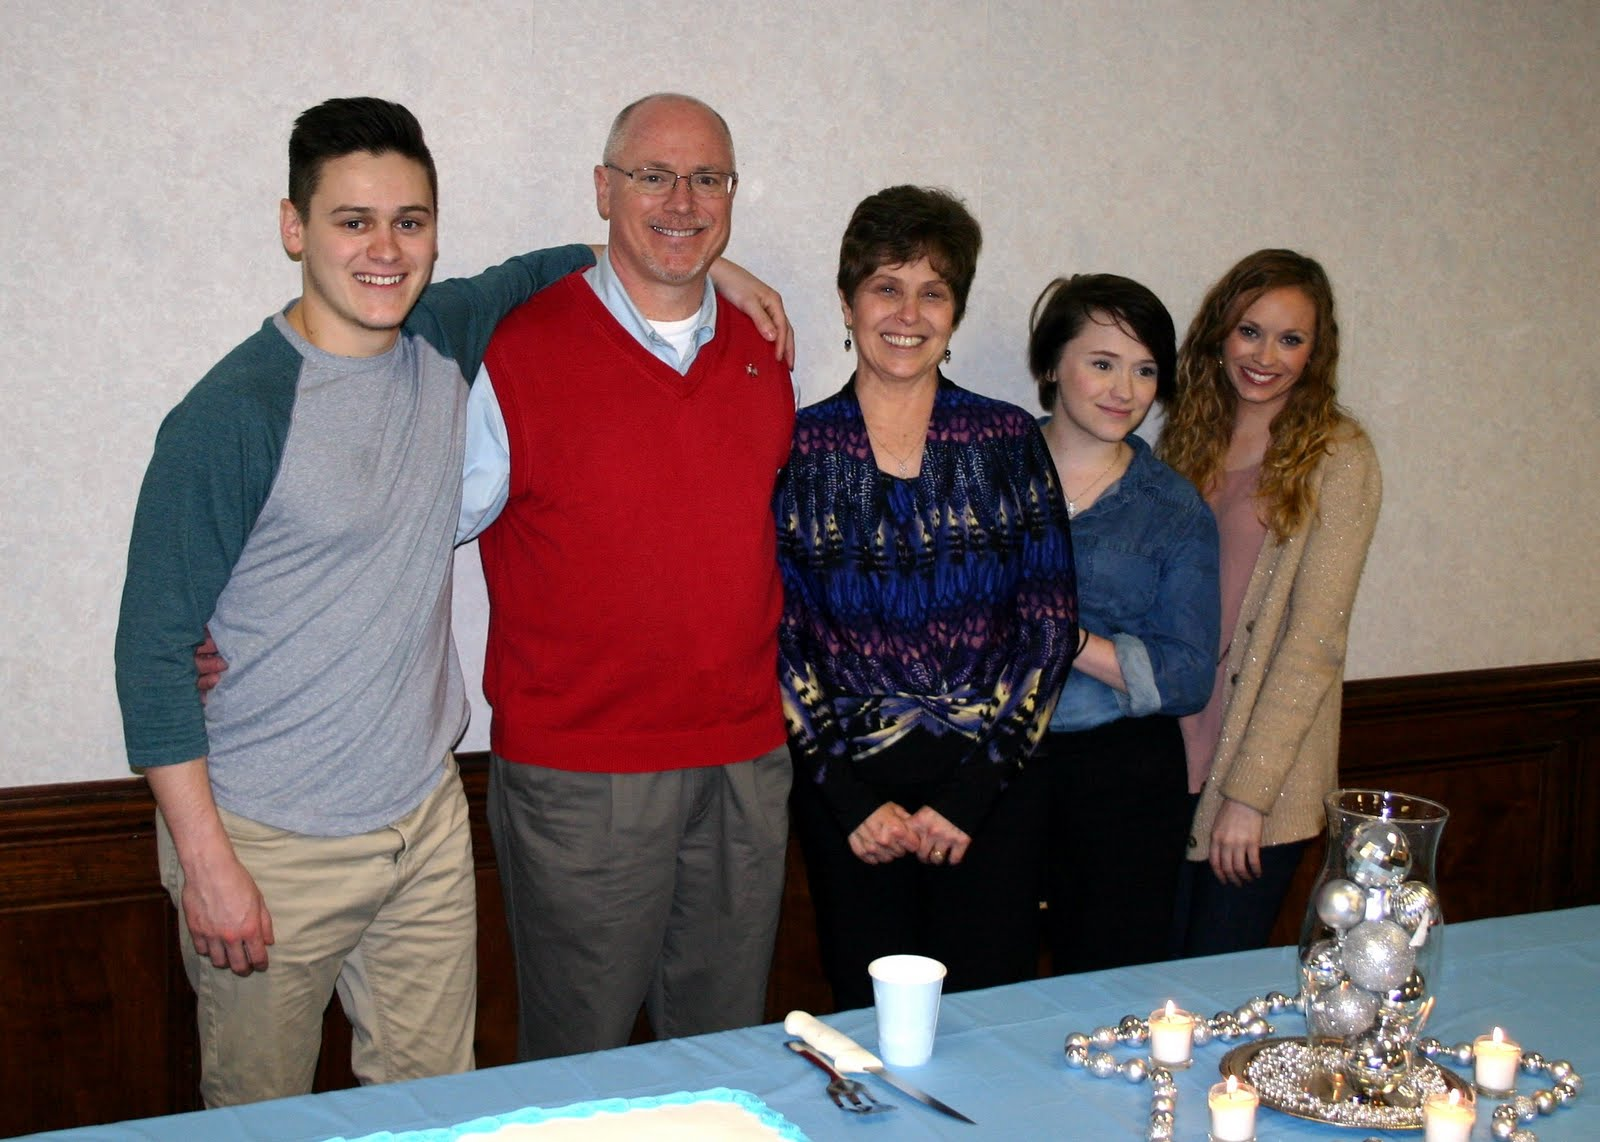 Jimmerson Family 10 Year Anniversary